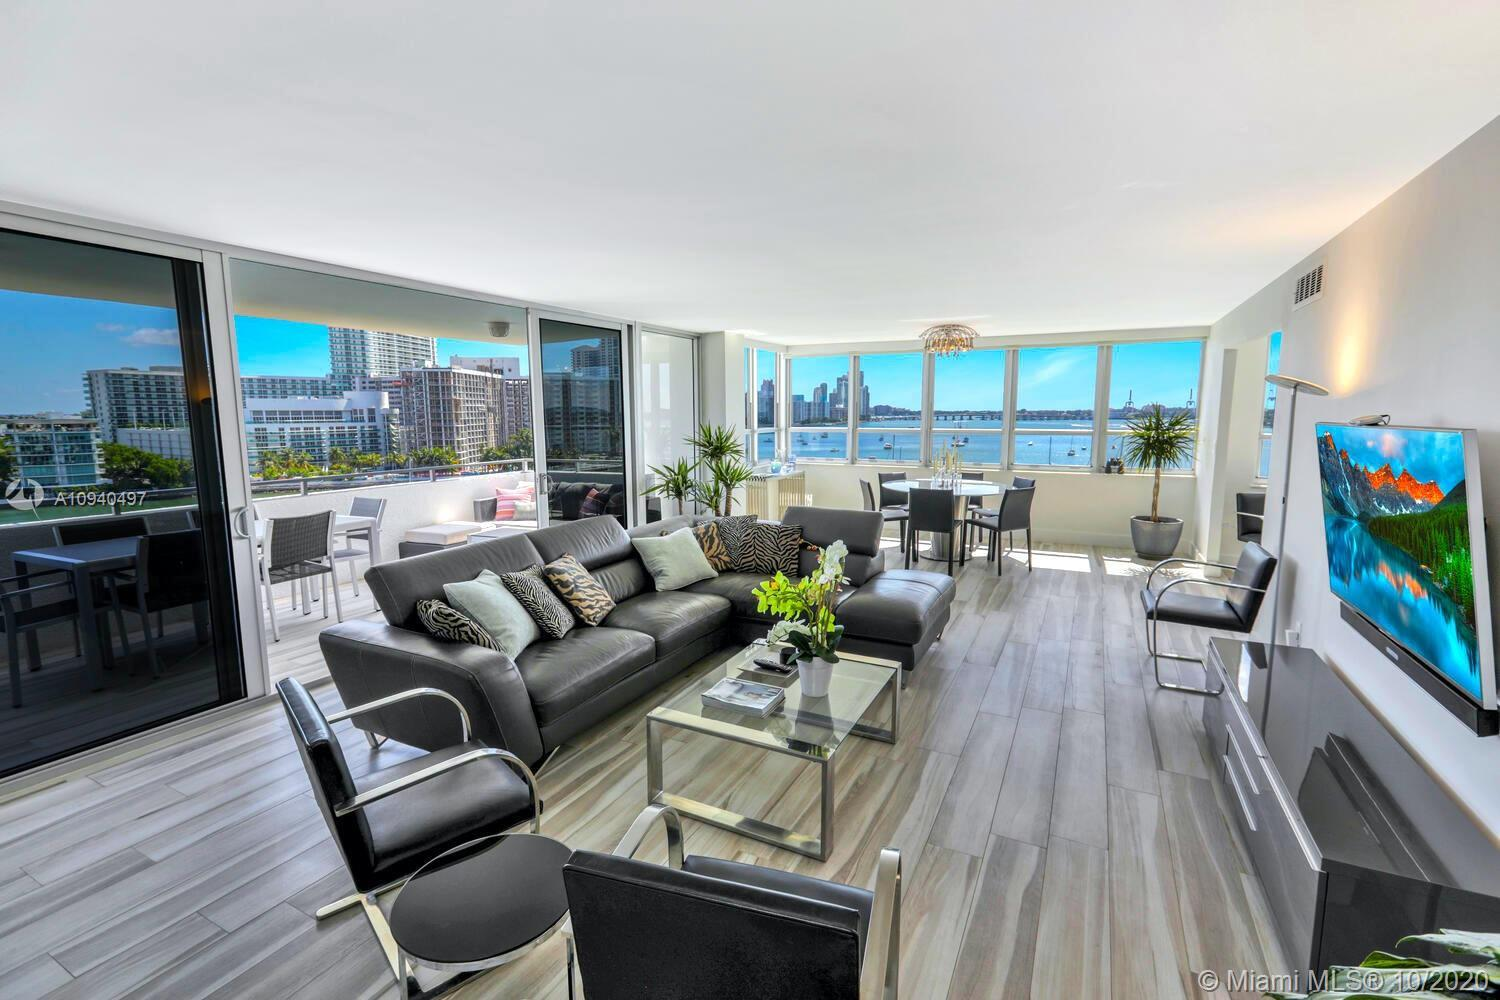 Sleek, refined fully renovated SE corner unit with unobstructed water & city views from every room.